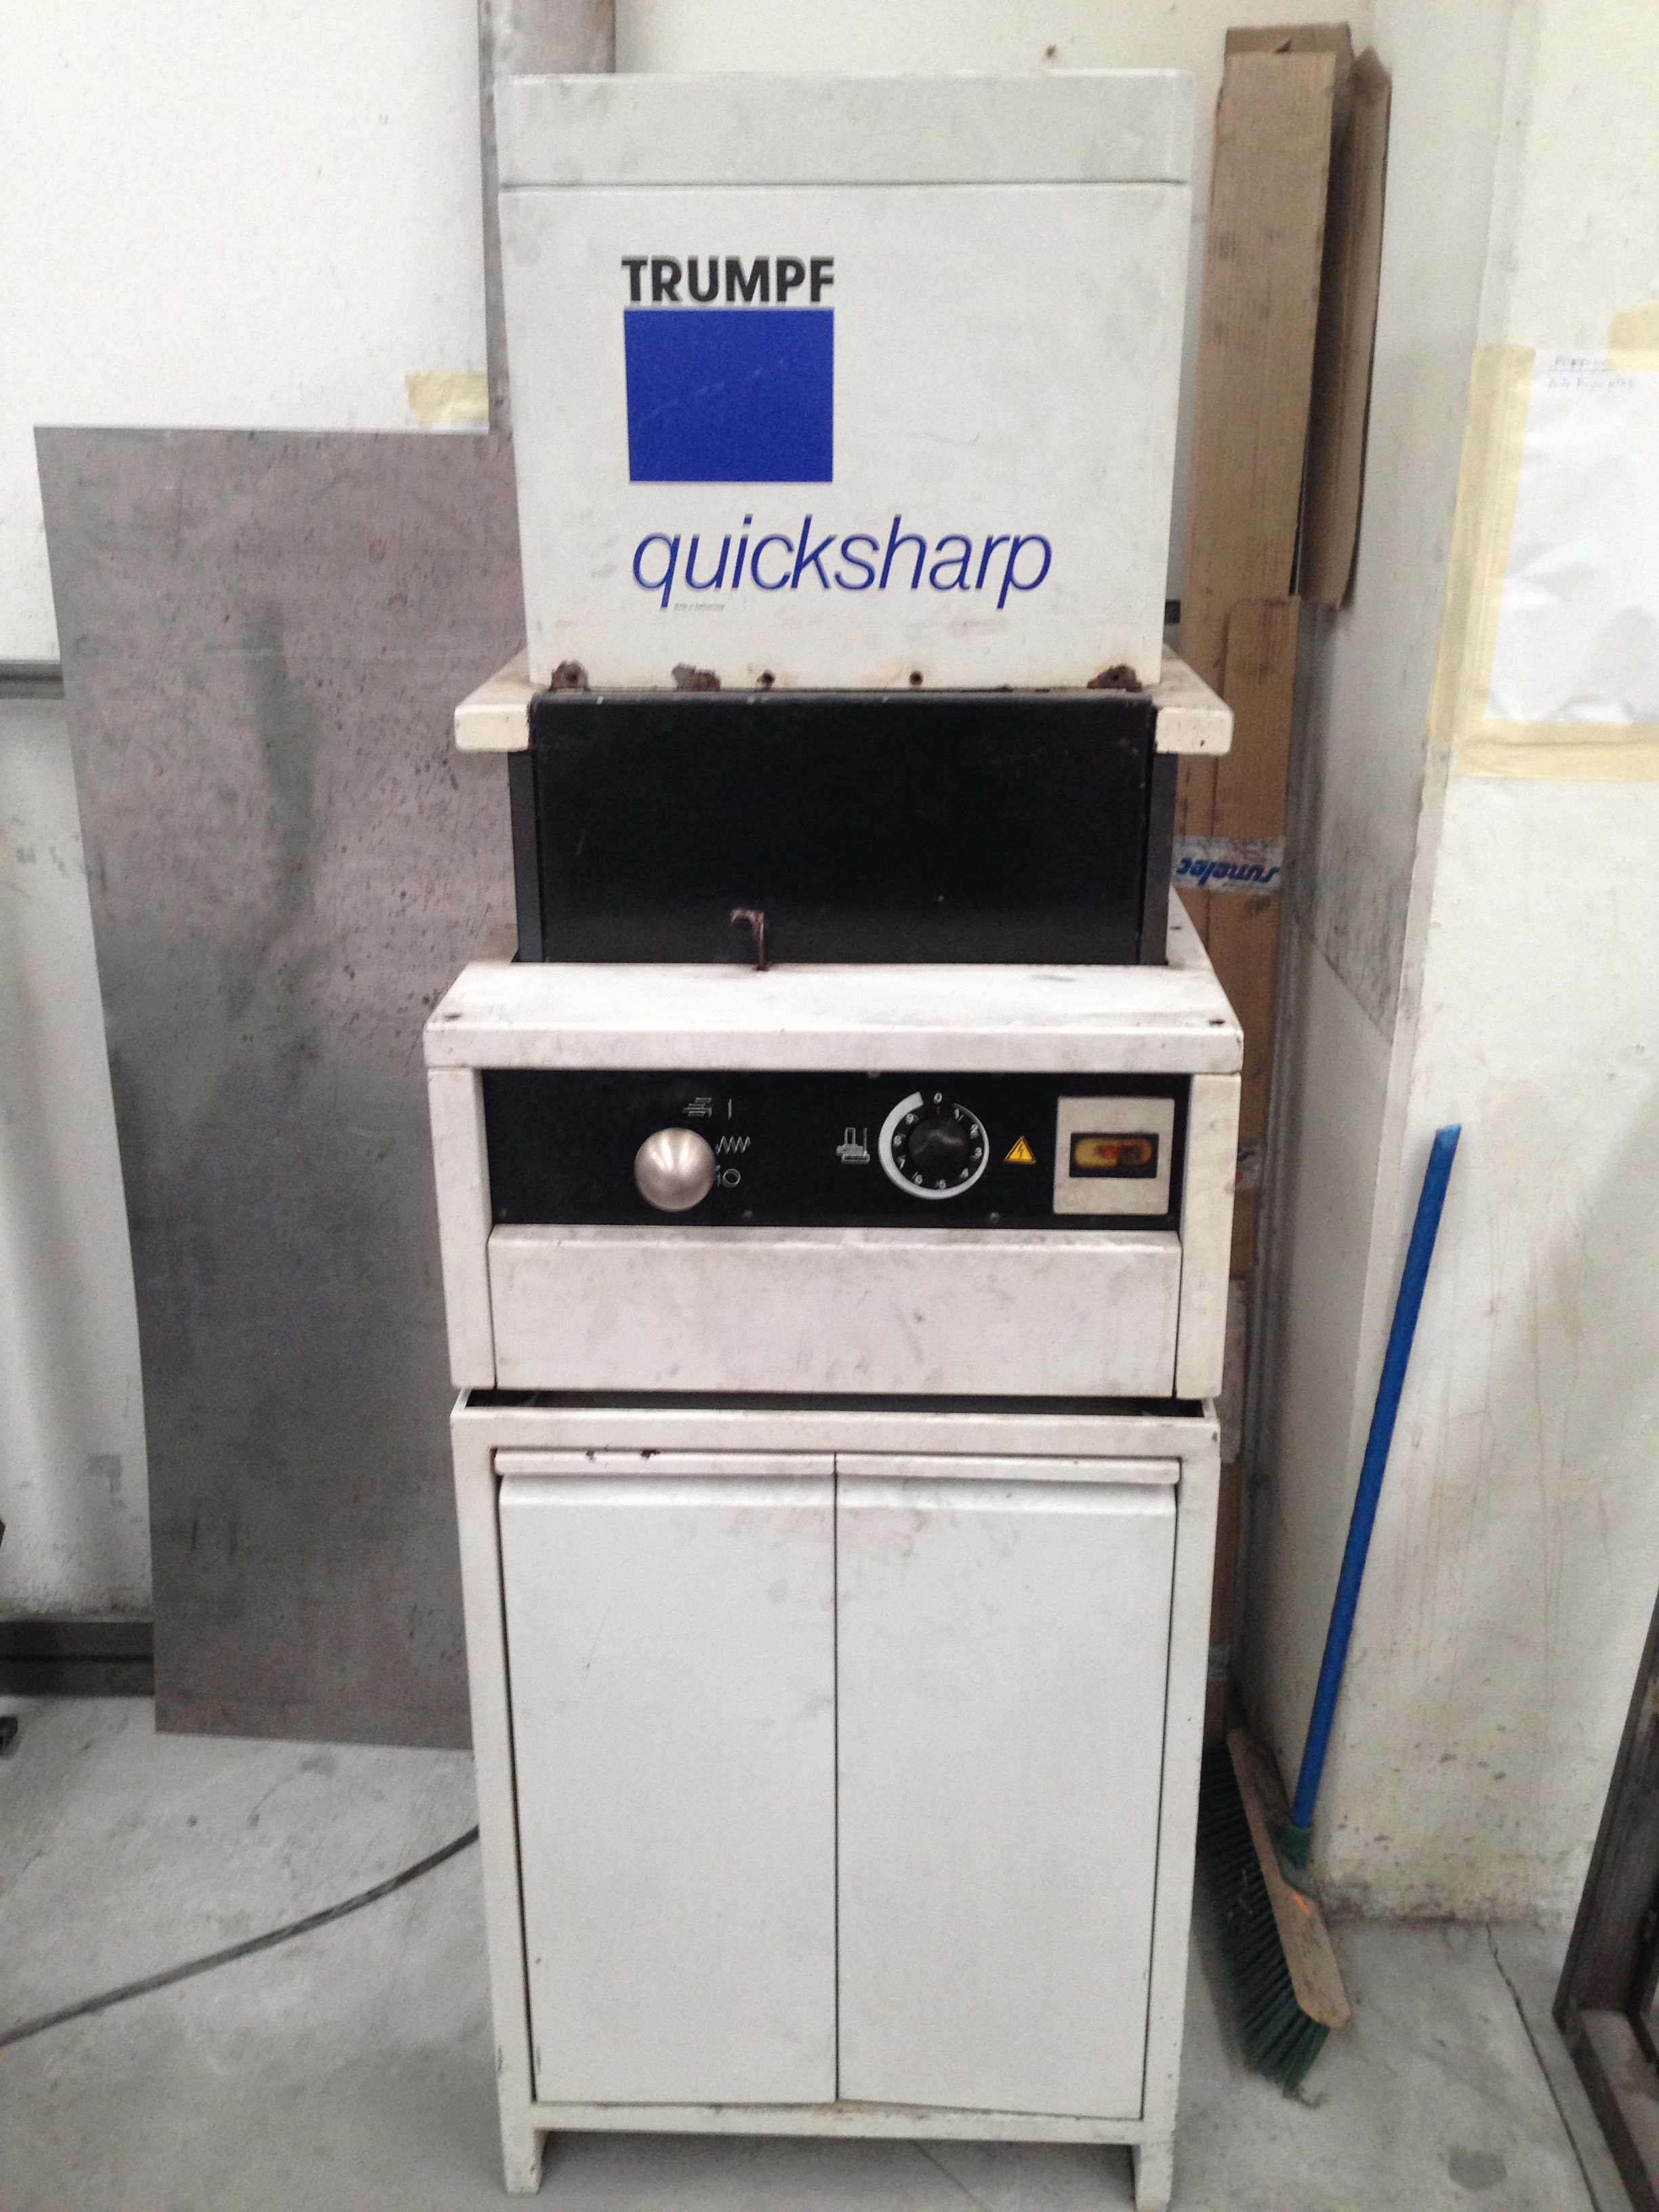 Trumpf quicksharp